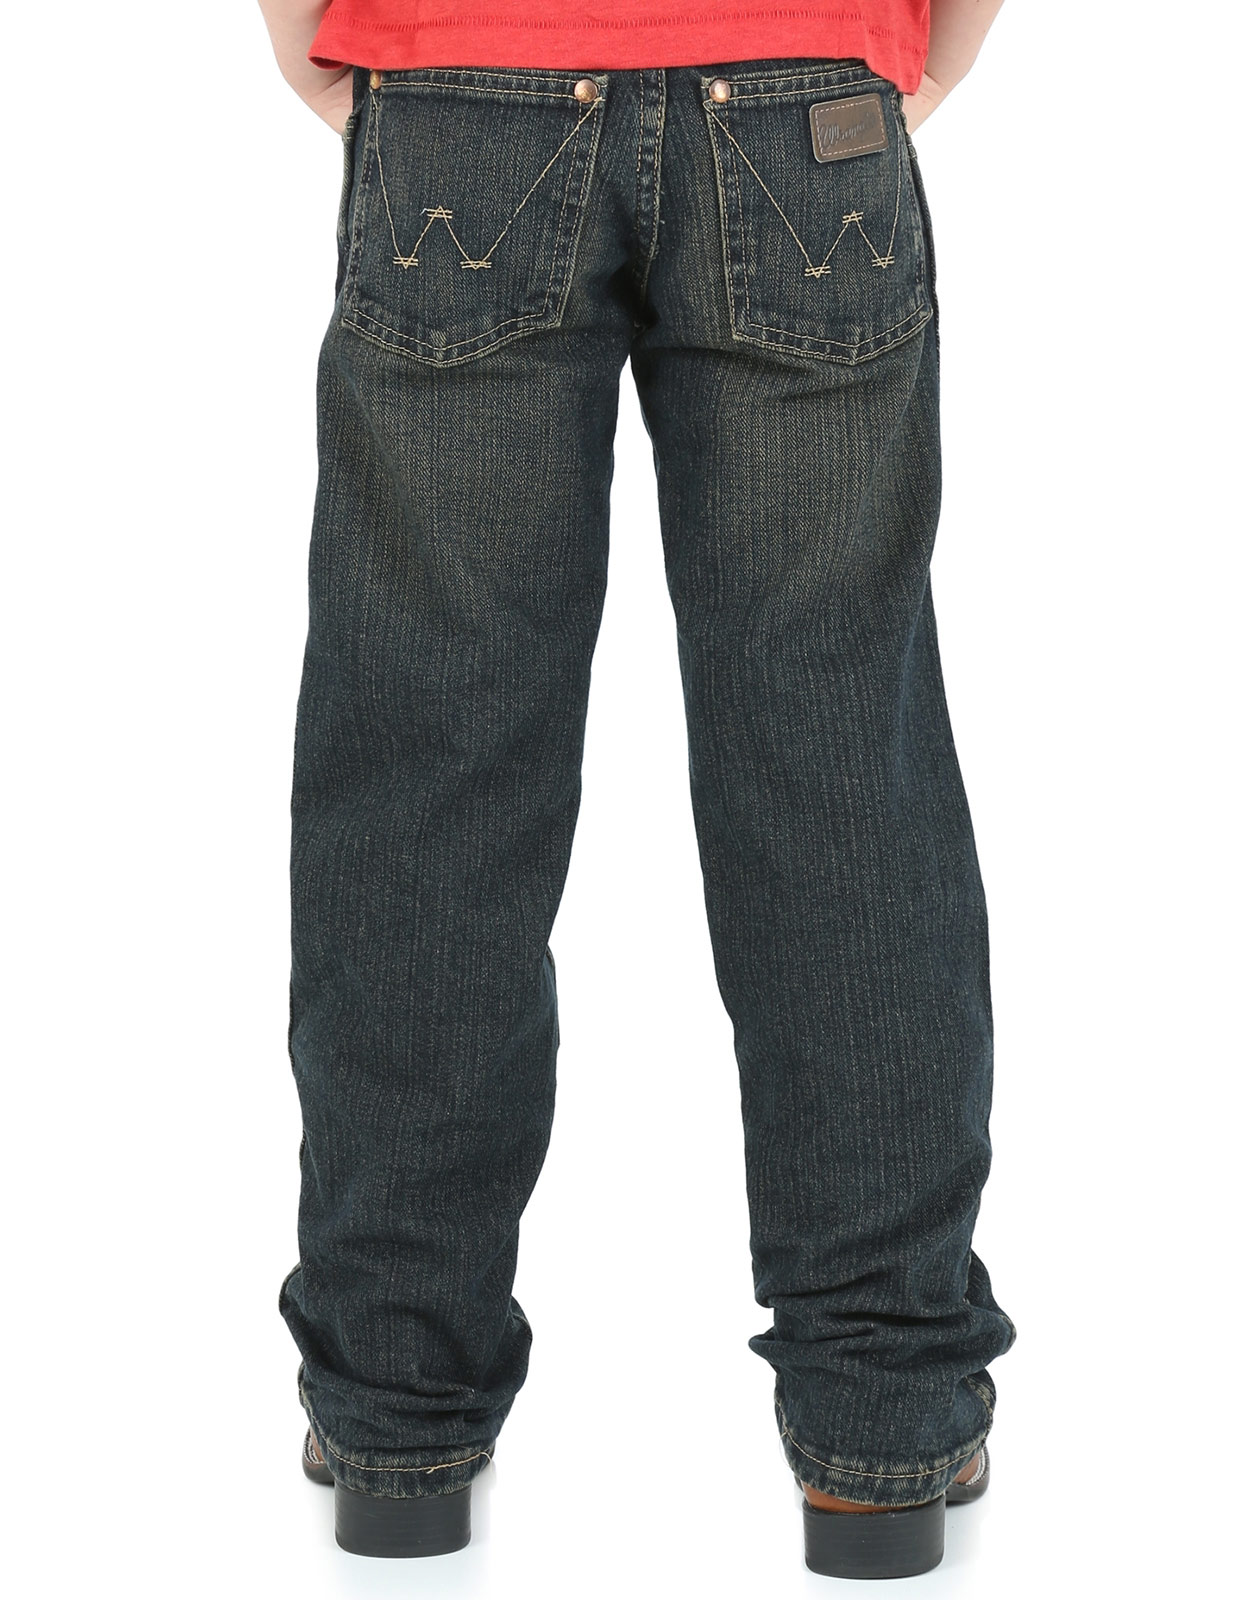 Wrangler Boy's Retro Low Rise Relaxed Fit Straight Leg Jeans (Sizes 1T-7) - Rolling River